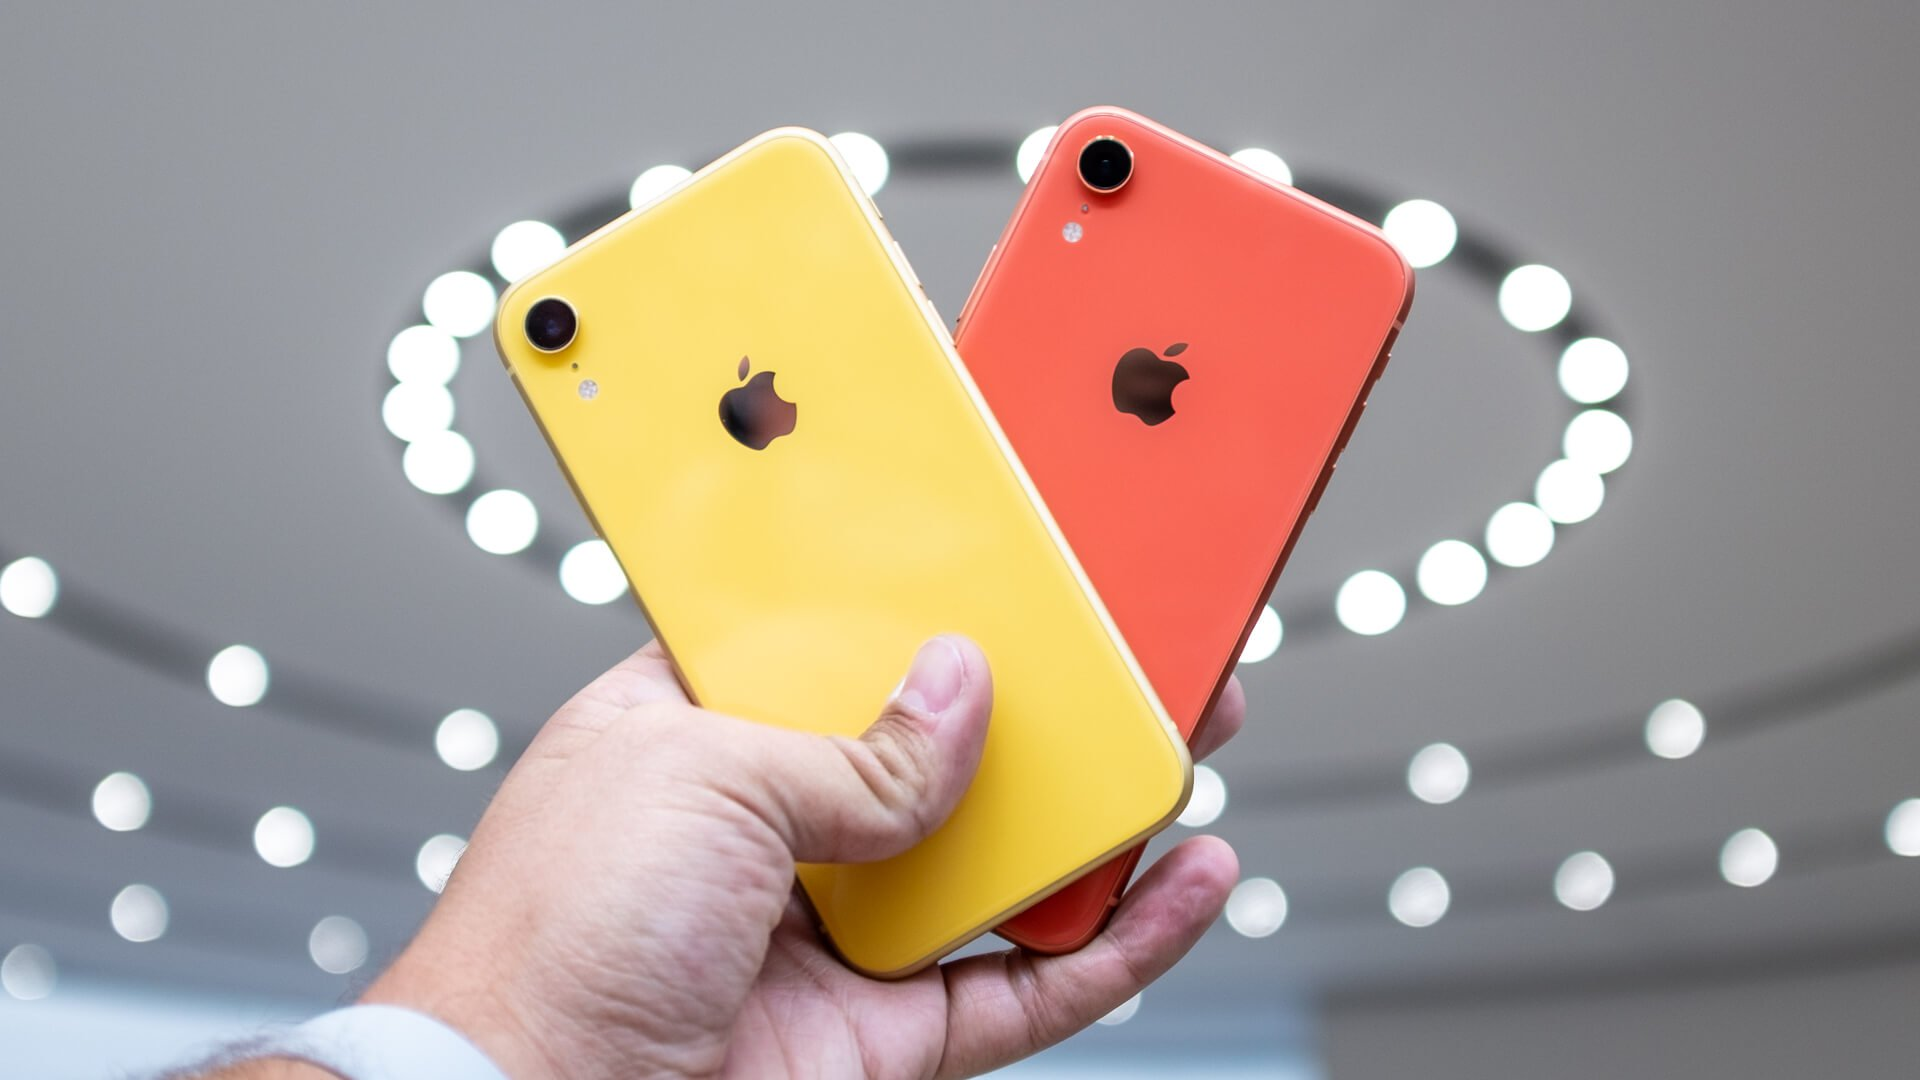 Repair iPhone XR will cost a pretty penny